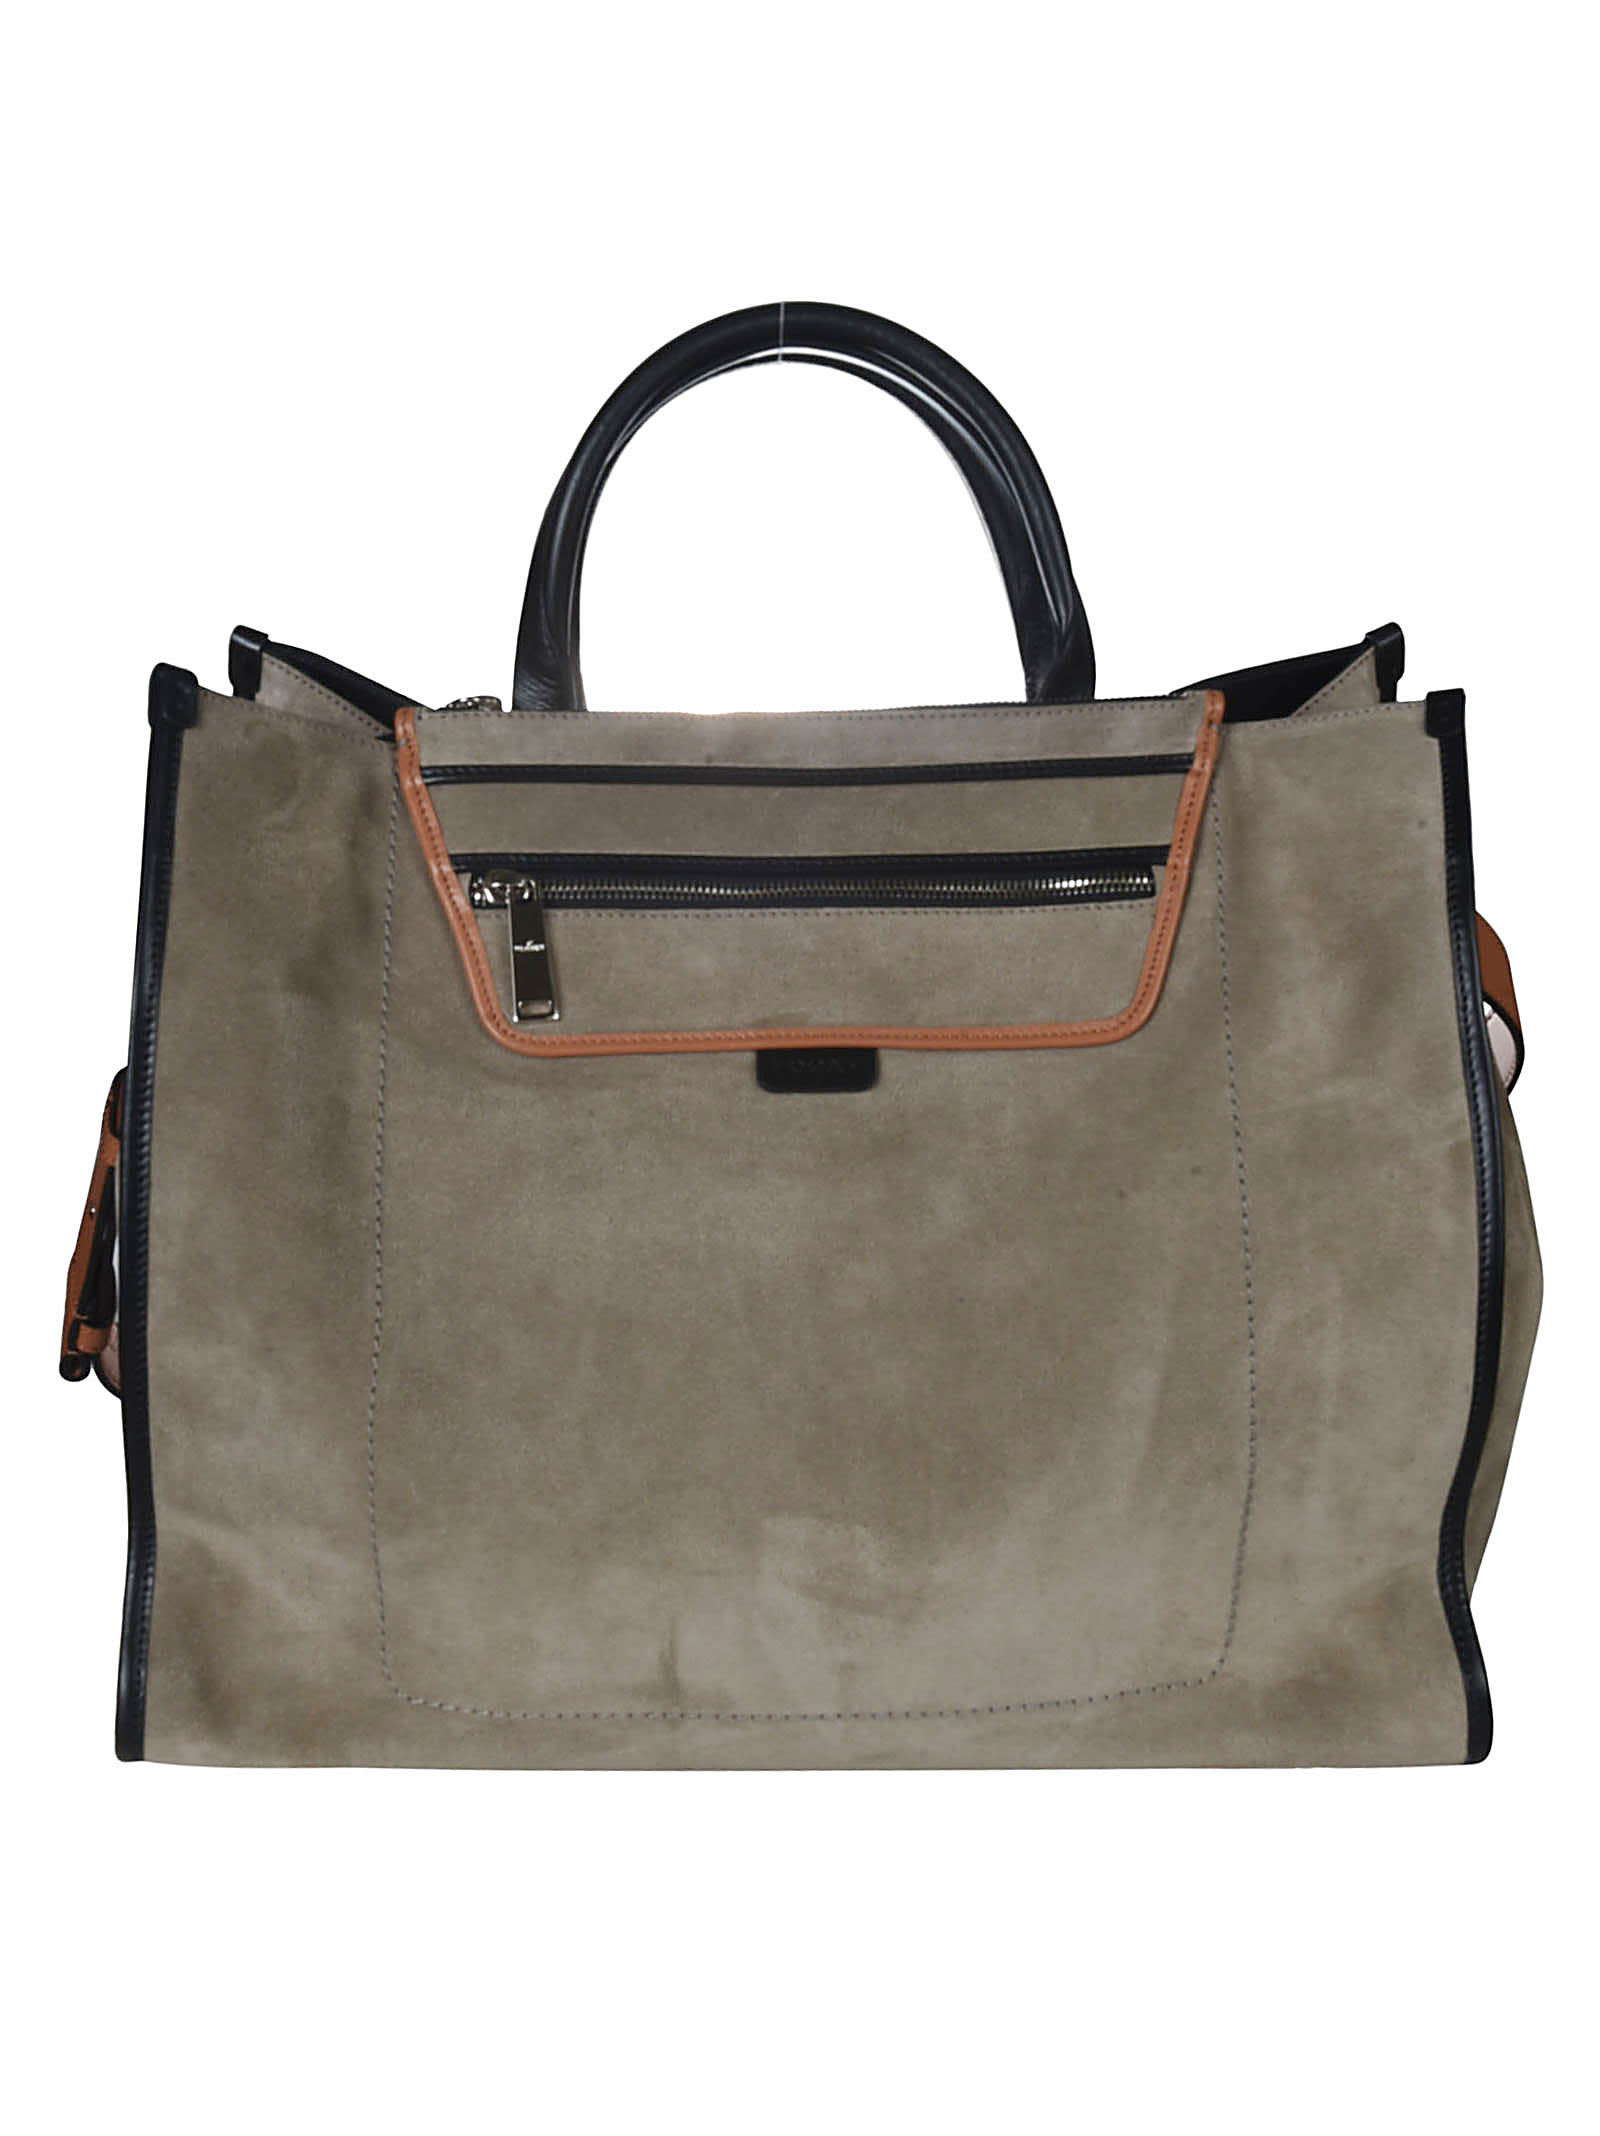 Hogan Totes TOP ZIP FRONT POCKET TOTE